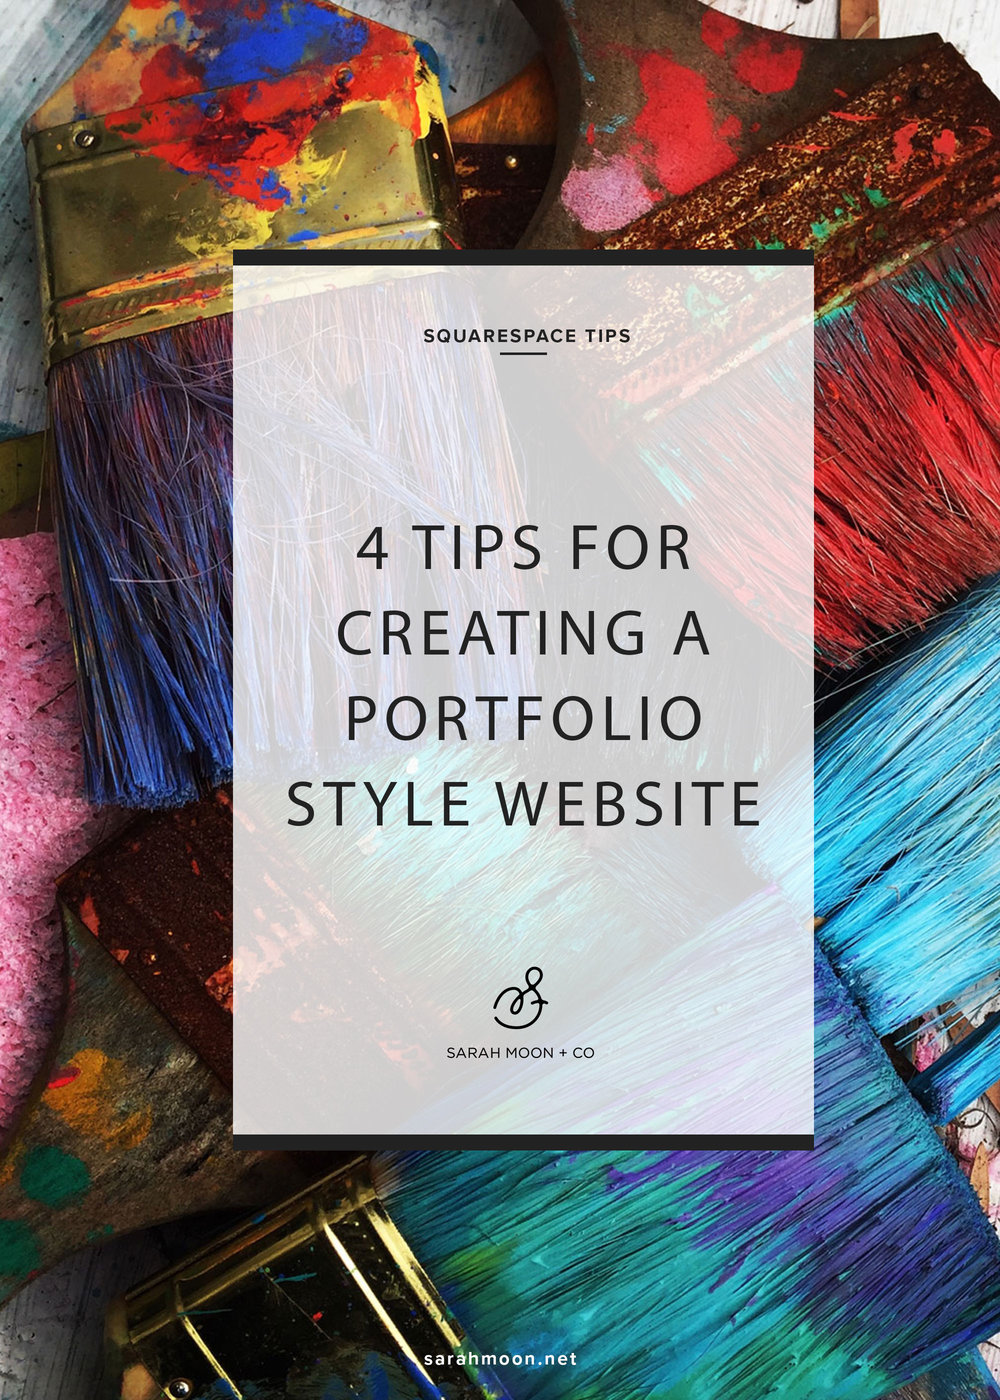 Tips for creating a successful Squarespace portfolio website with Squarespace. By Sarah Moon = sarahmoon.net